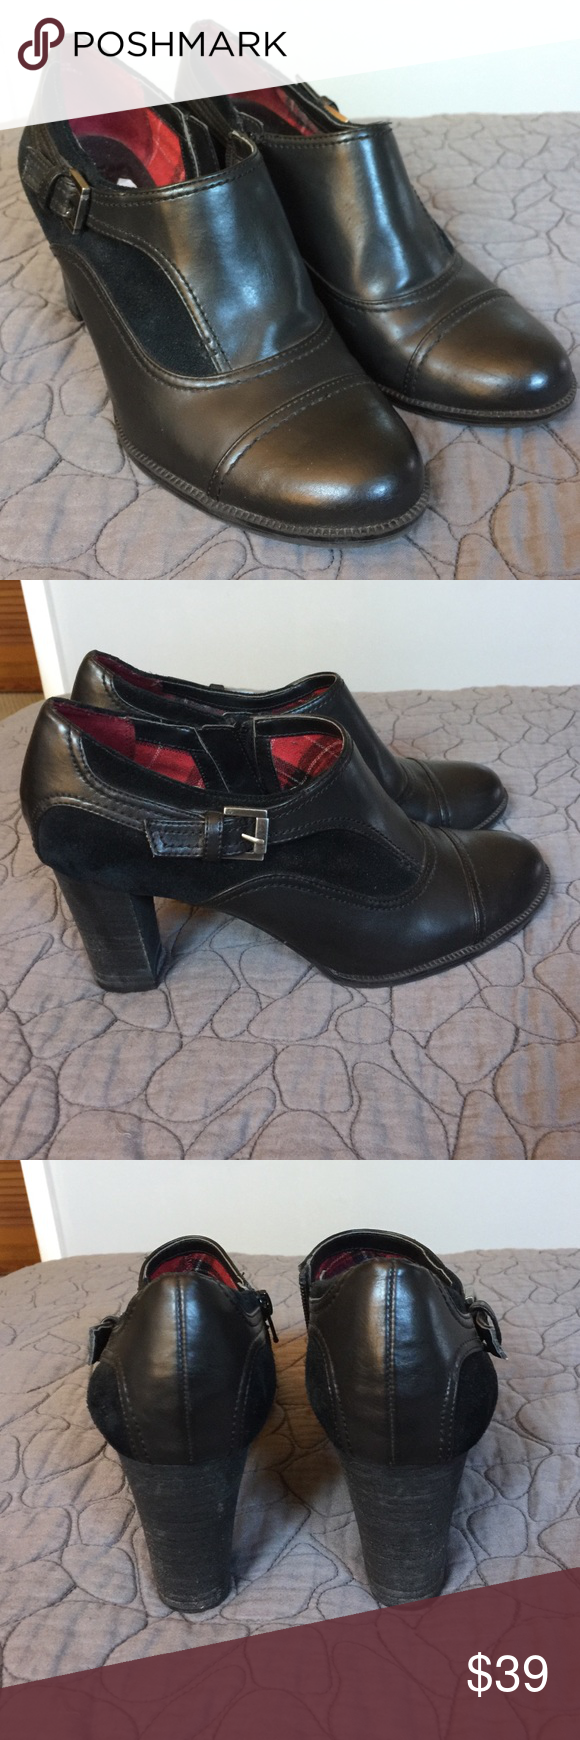 Etienne Aigner Black Booties Beautiful Etienne Aigner Shoes Ankle Boots & Booties